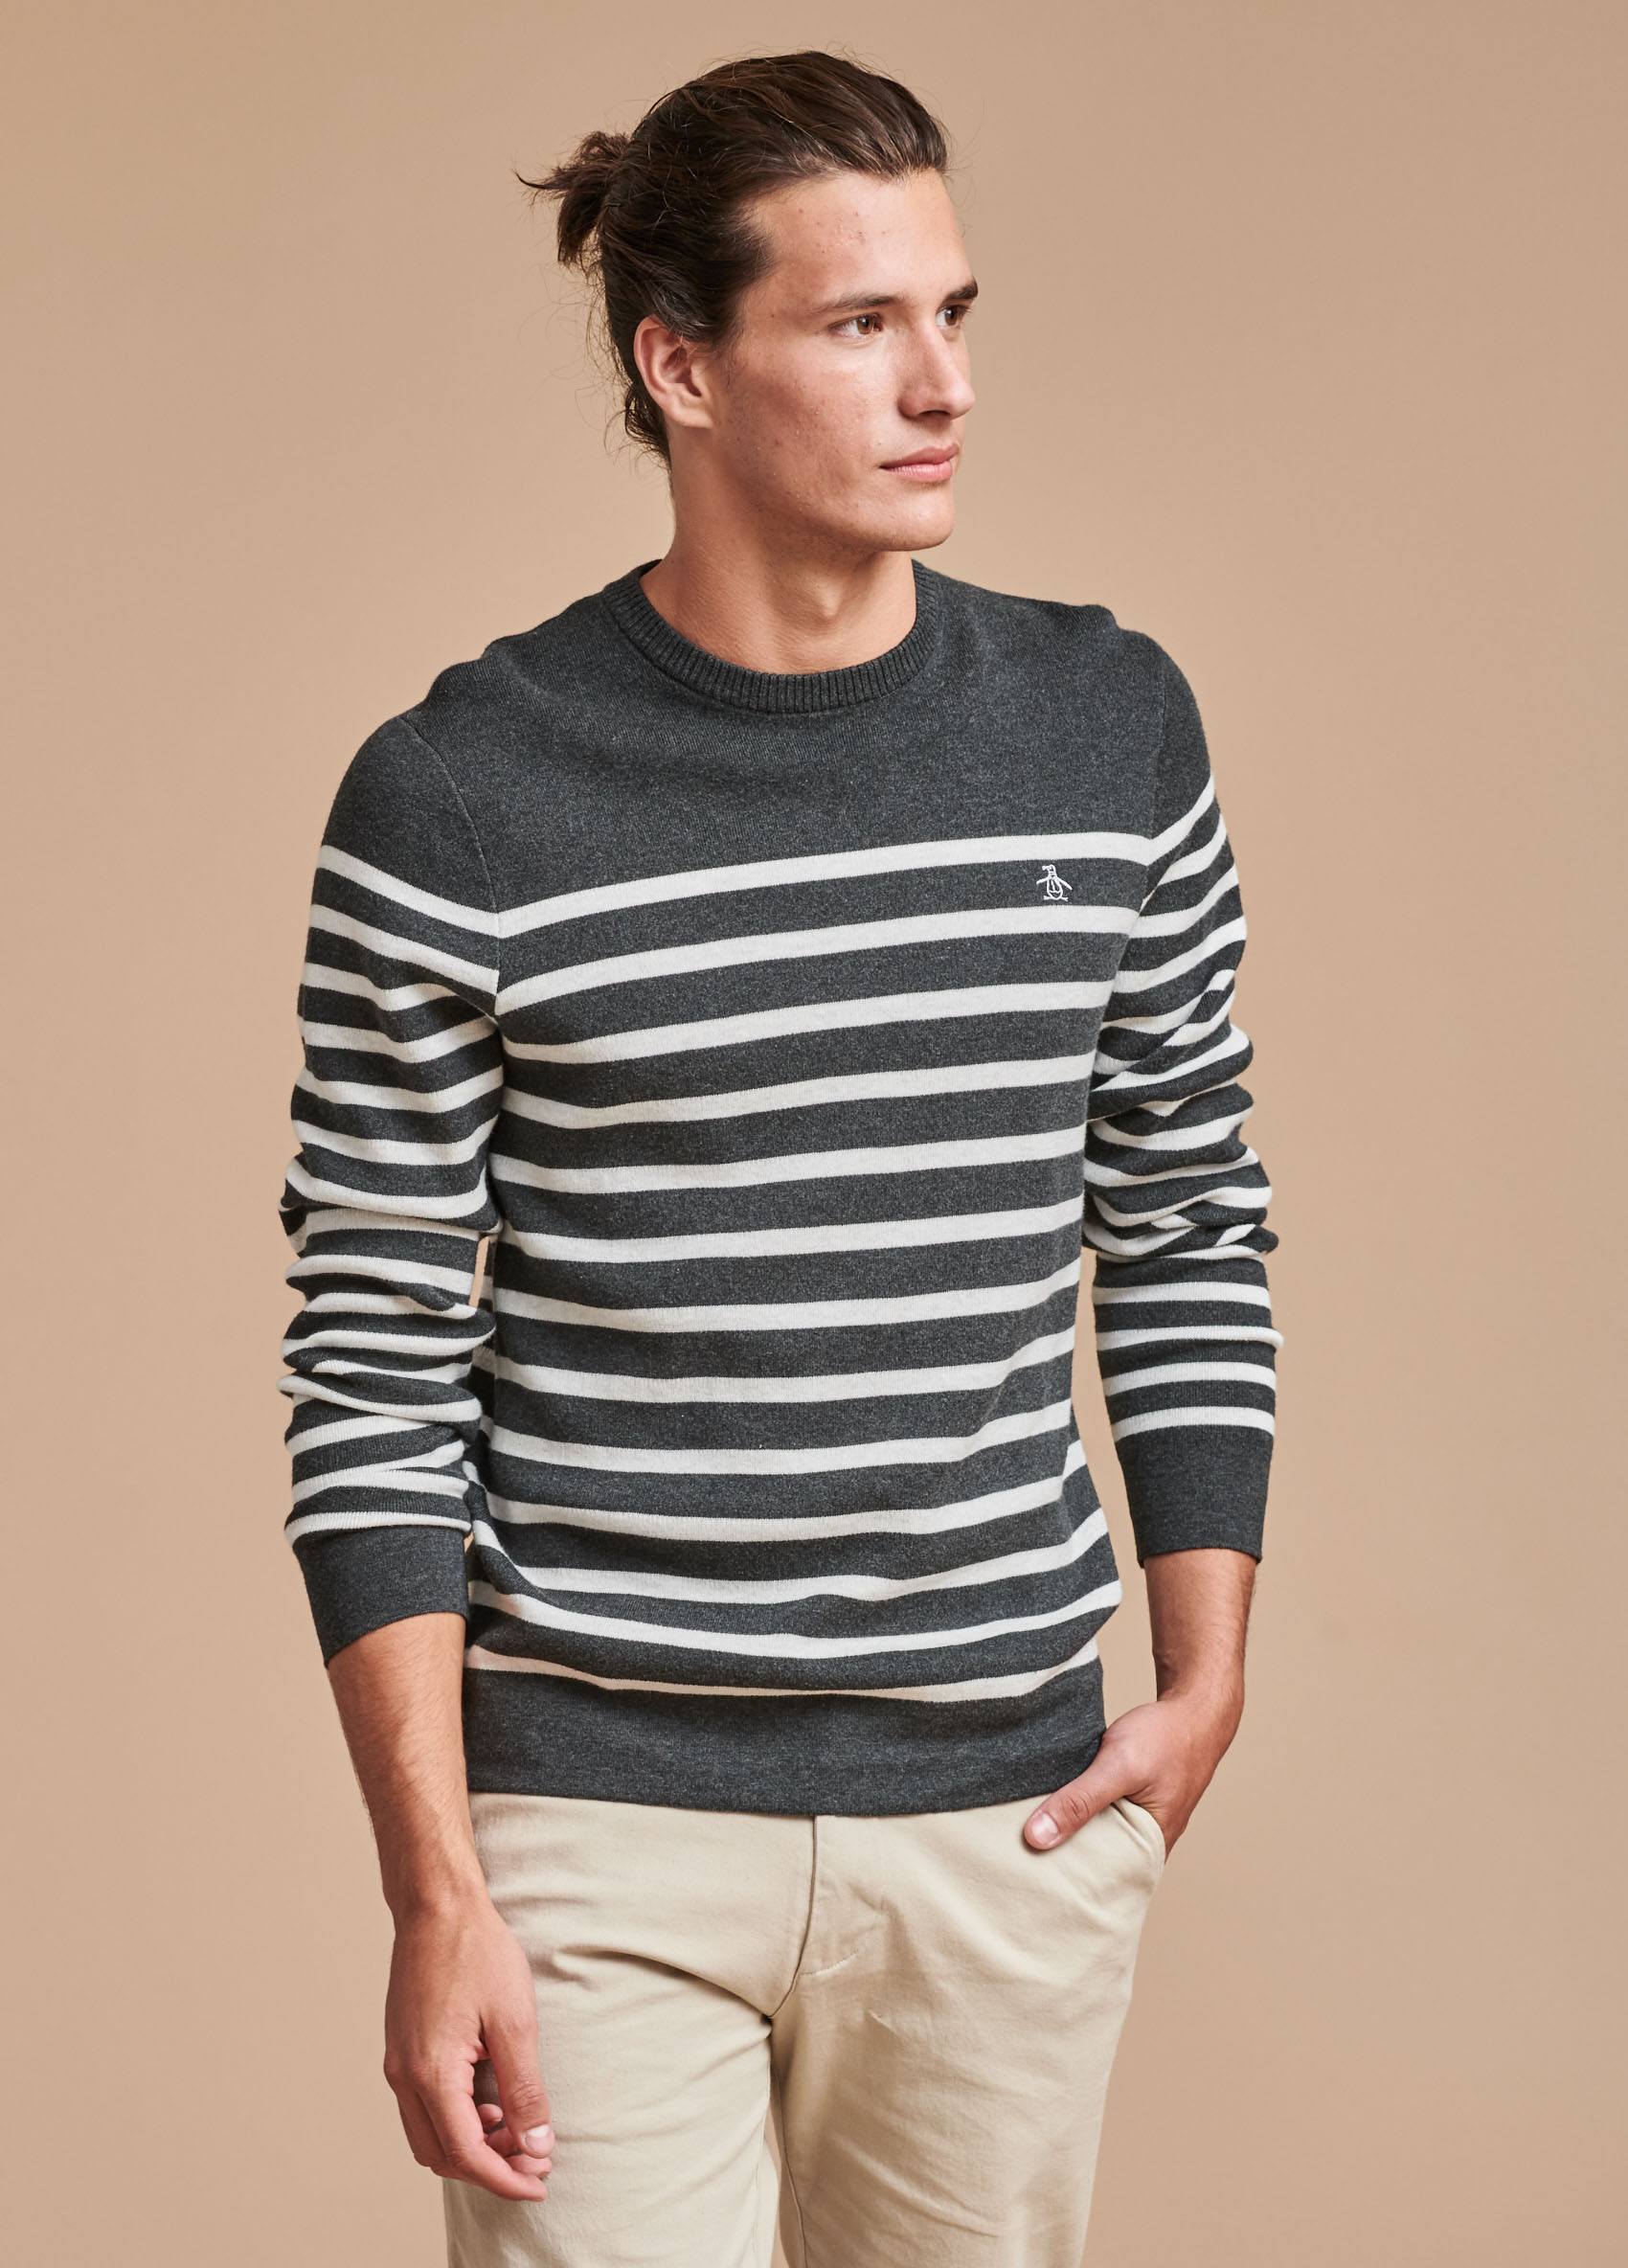 penguin_supima-cotton-breton-stripe-crew_15-19-2019__picture-9213